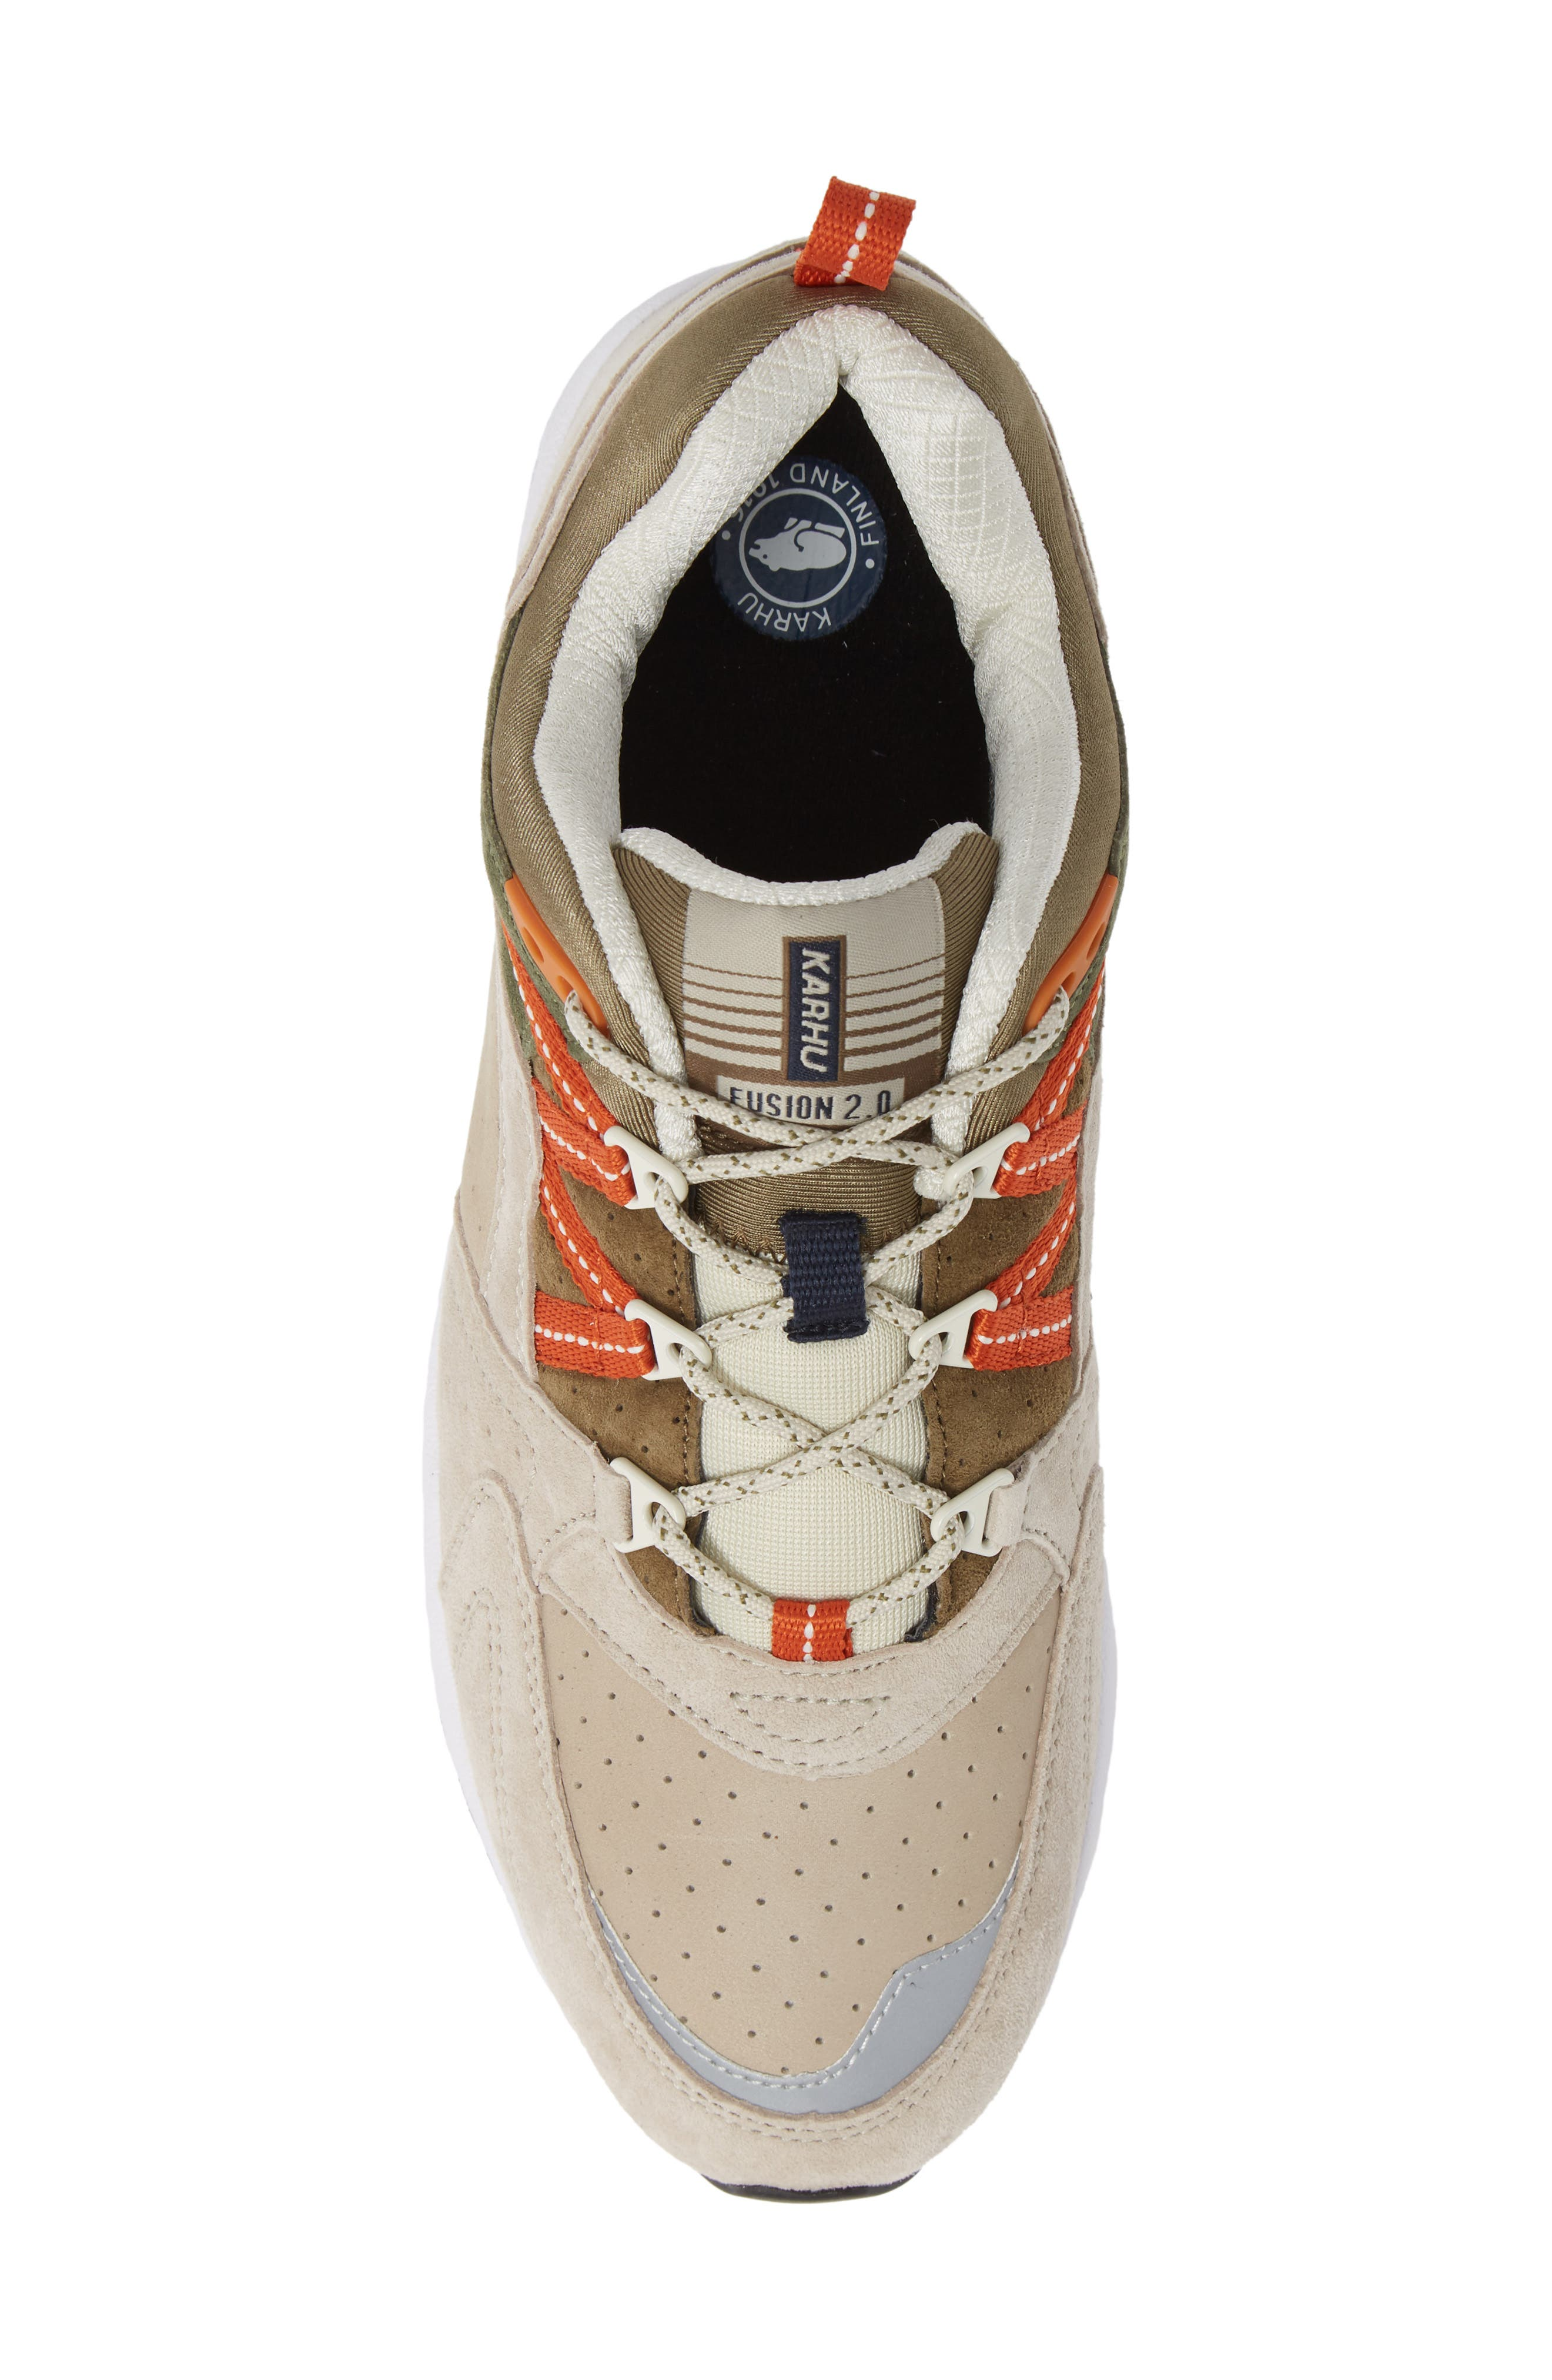 Fusion 2.0 Sneaker,                             Alternate thumbnail 5, color,                             PEYOTE / MILITARY OLIVE